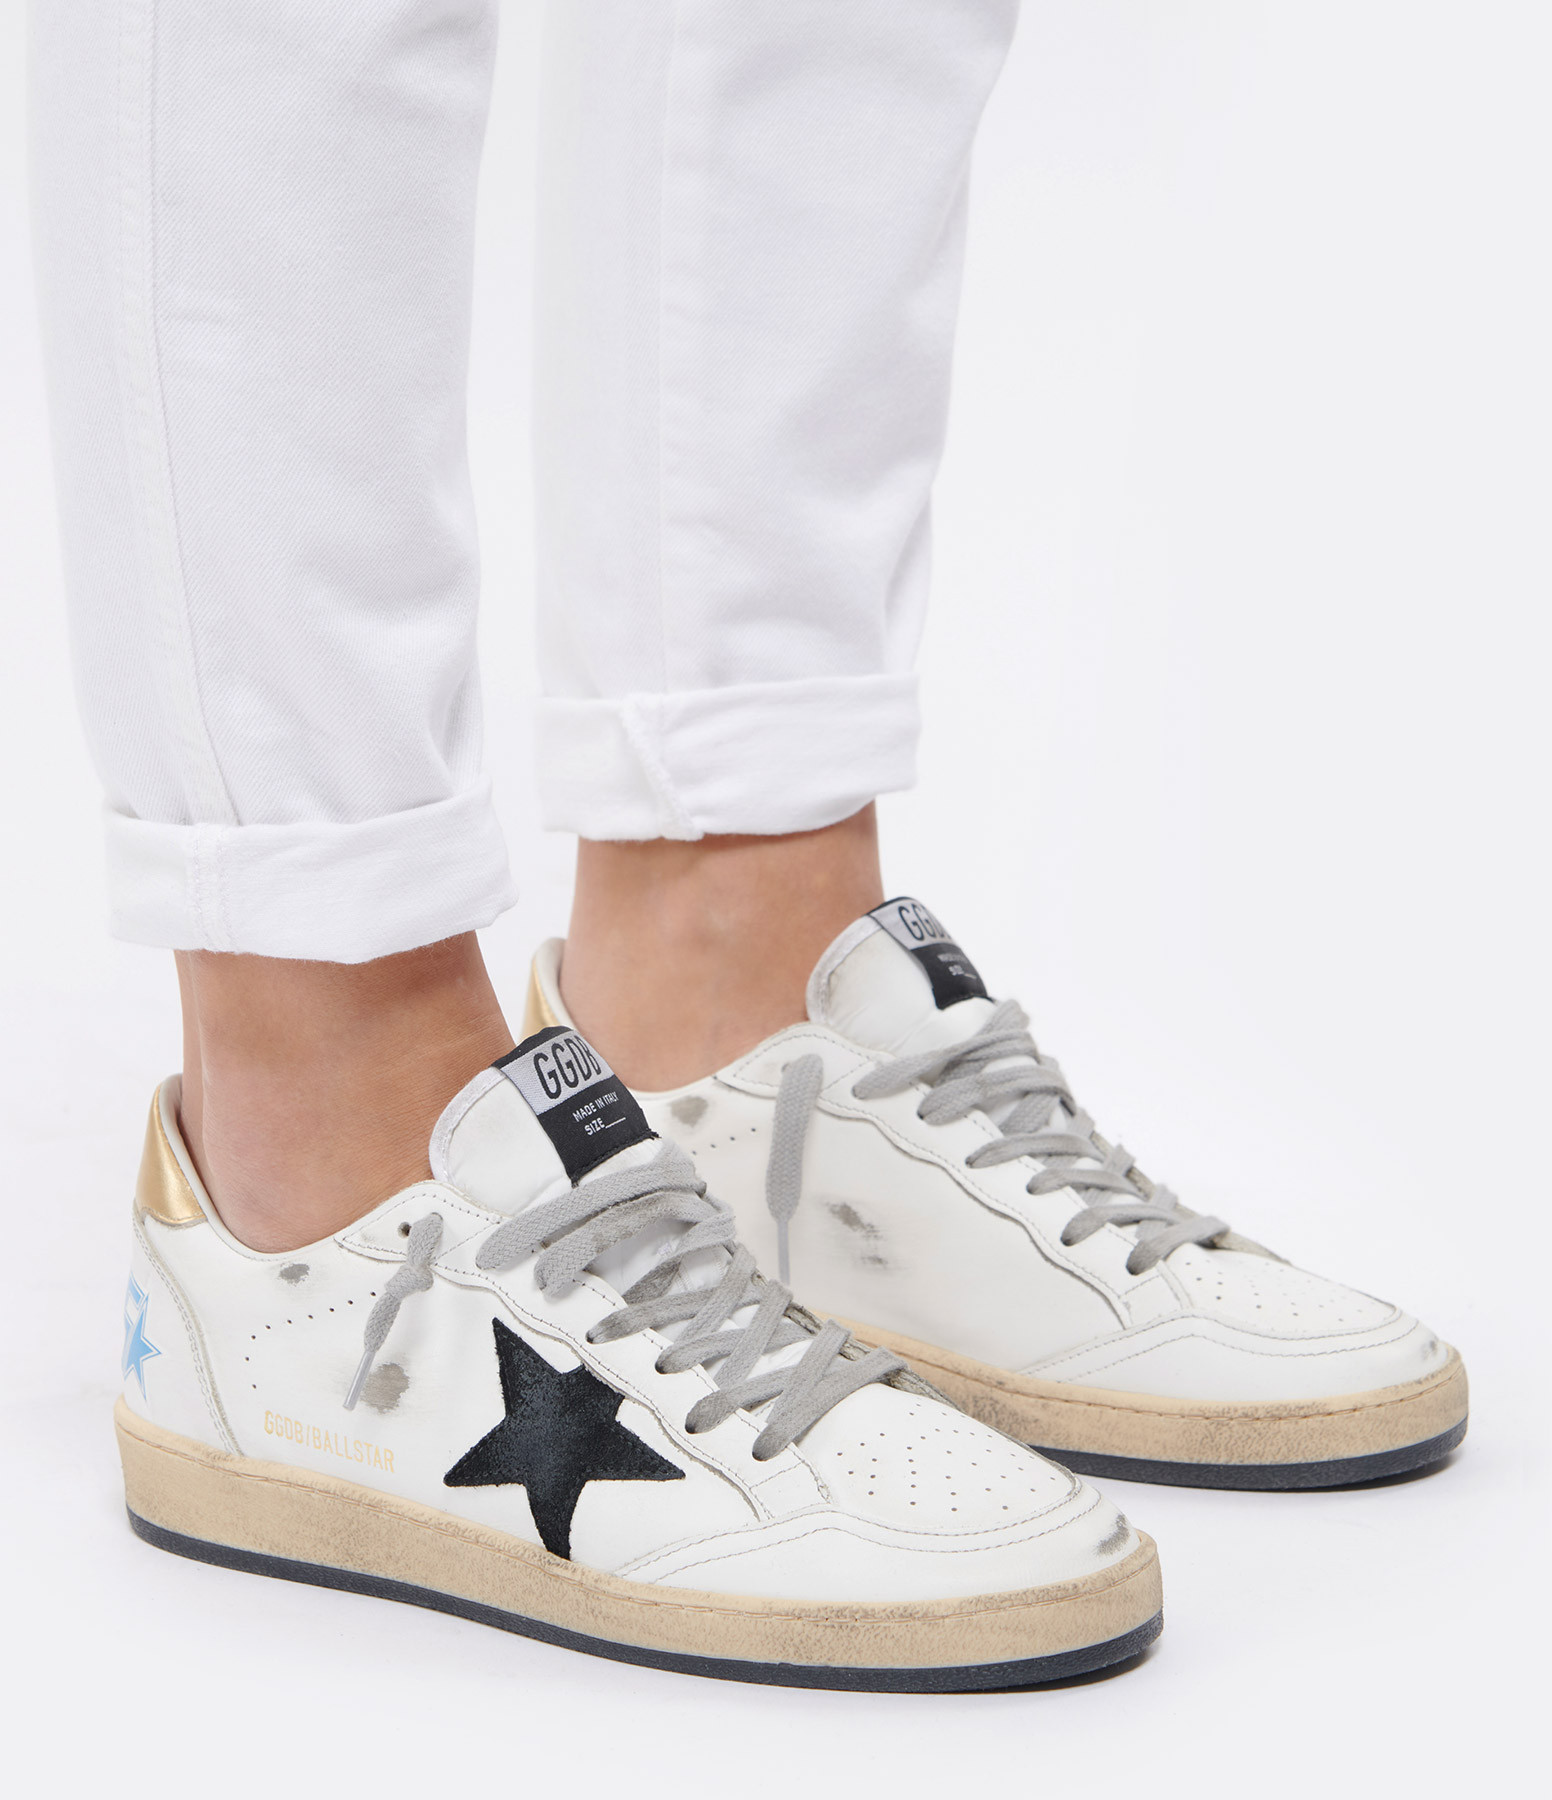 GOLDEN GOOSE - Baskets Ball Star Cuir Suédé Noir Doré